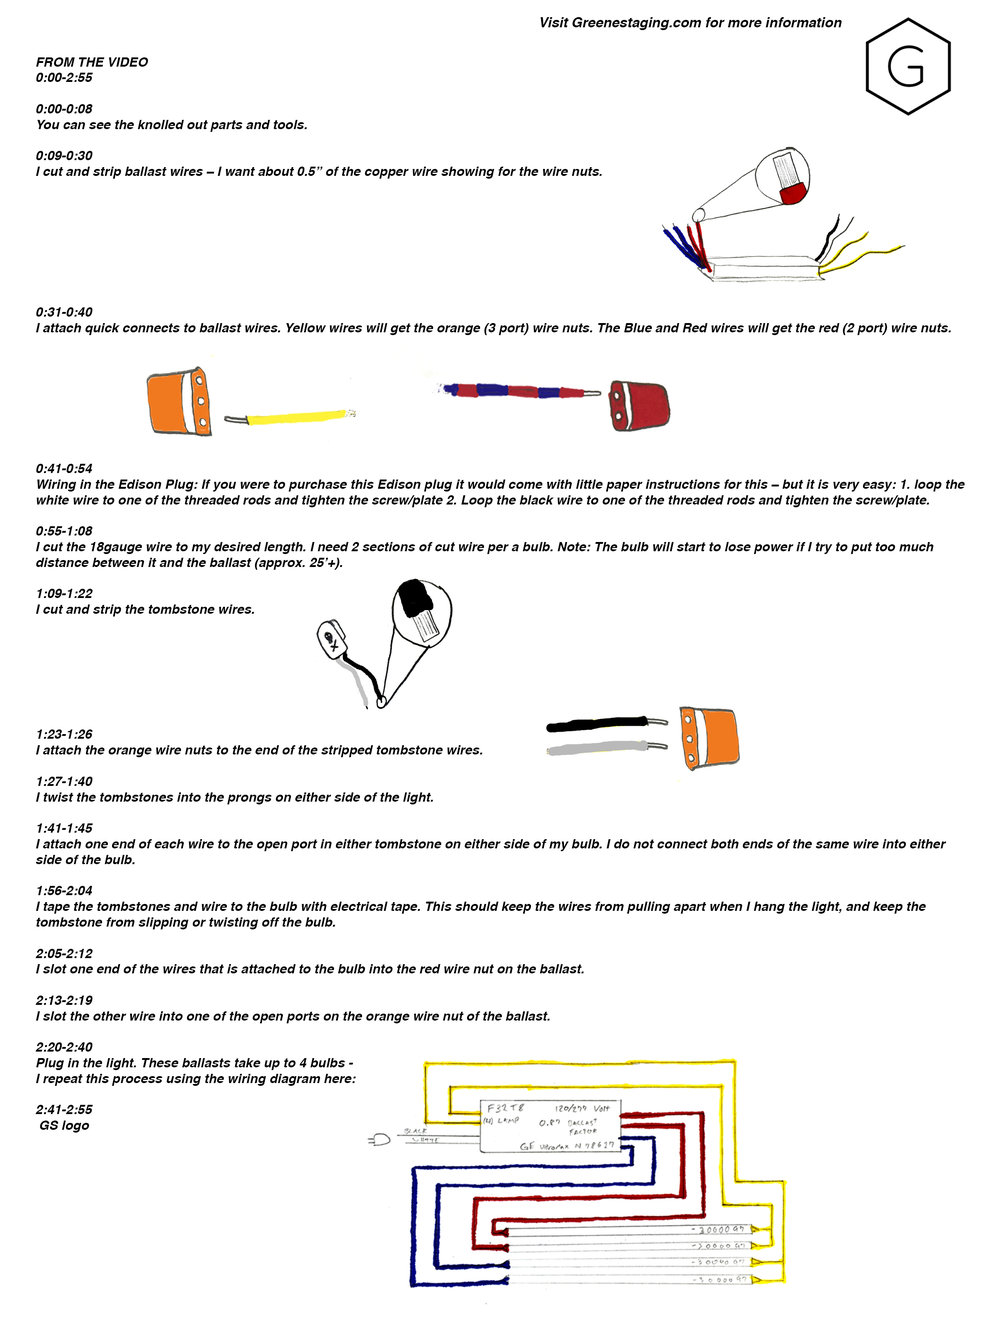 Wiring+with+ballasts+(illustrated)_edited-1.jpg